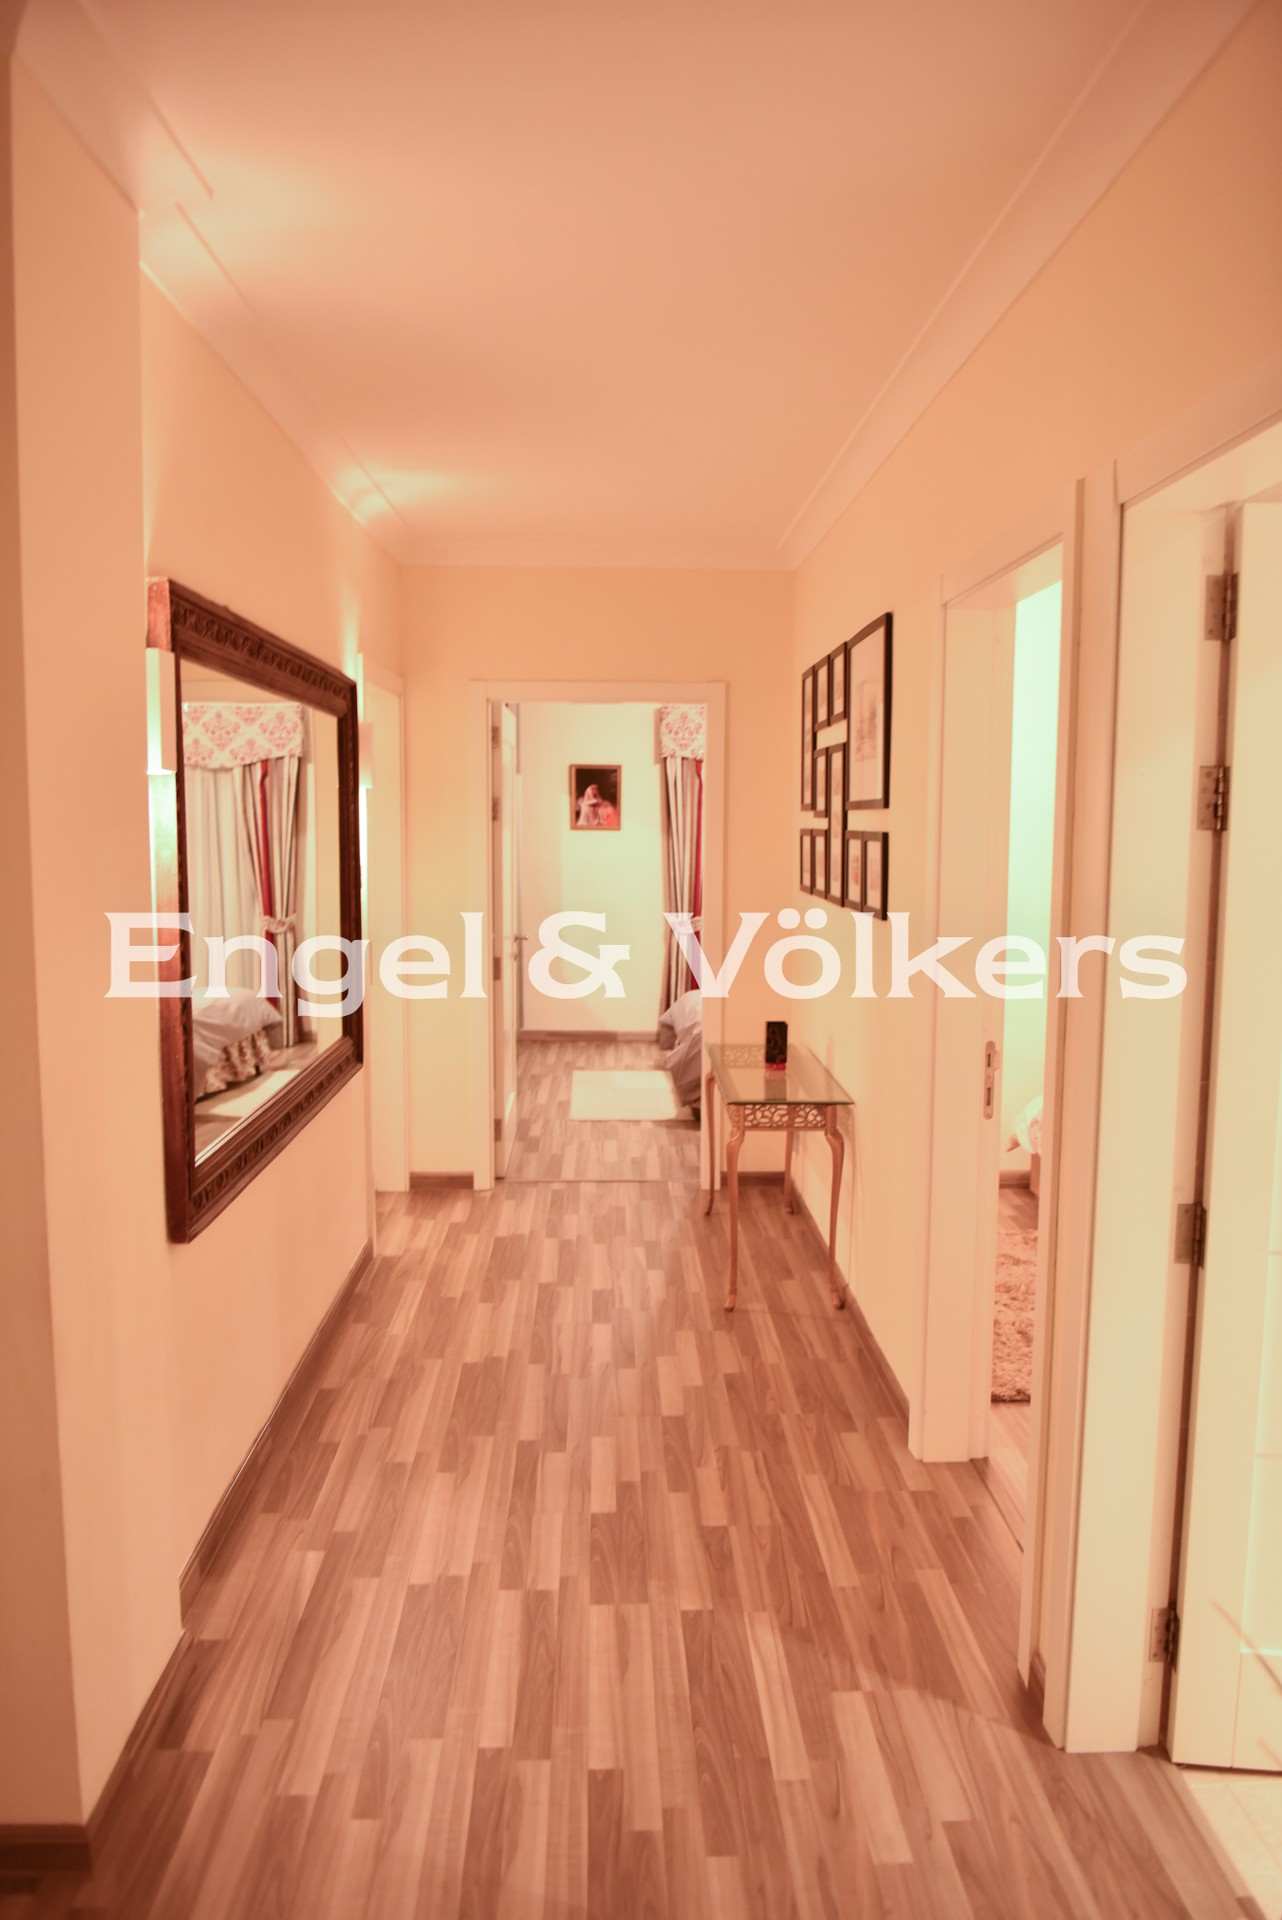 Apartment in Paceville - Apartment, Paceville, Hall Way